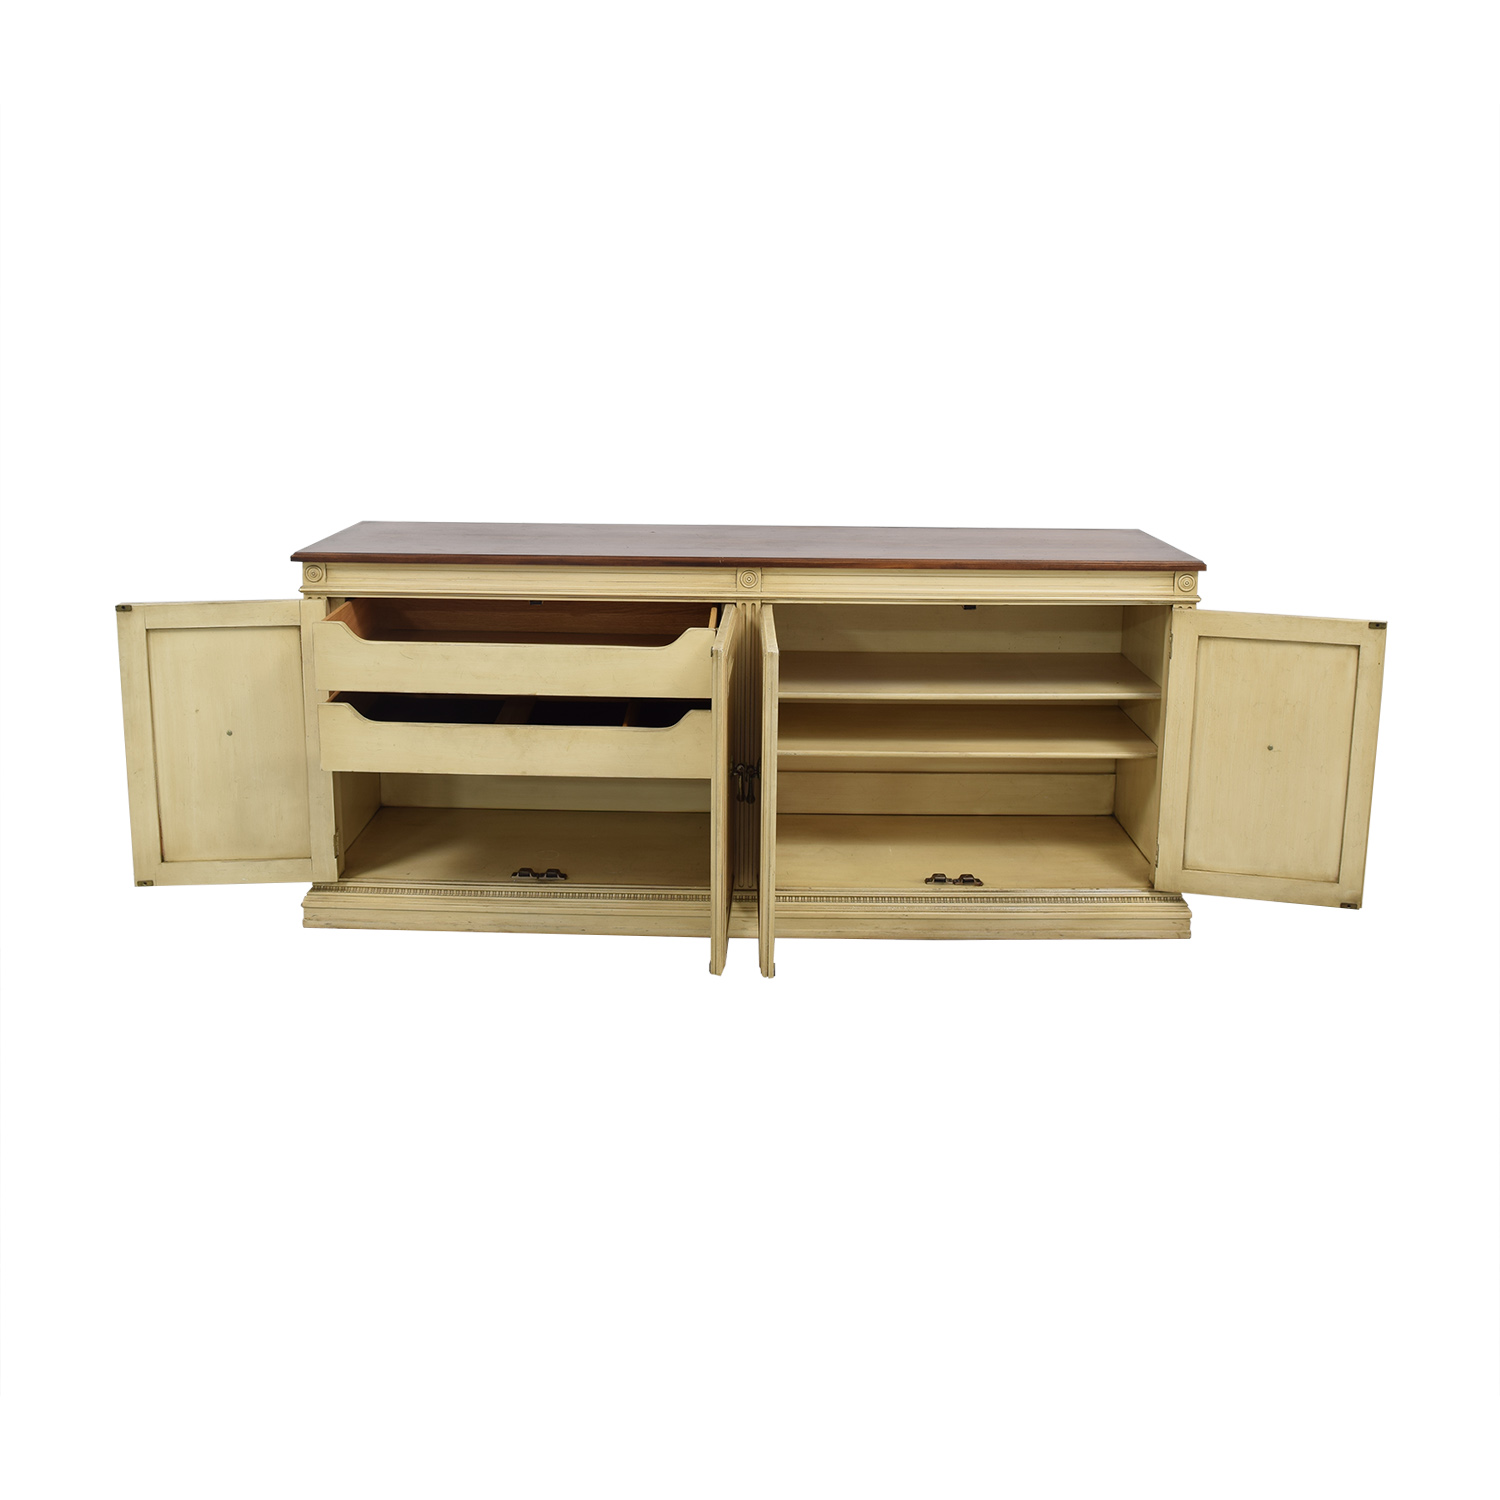 Davis Cabinet Company Davis Cabinet Company Sideboard off white and brown